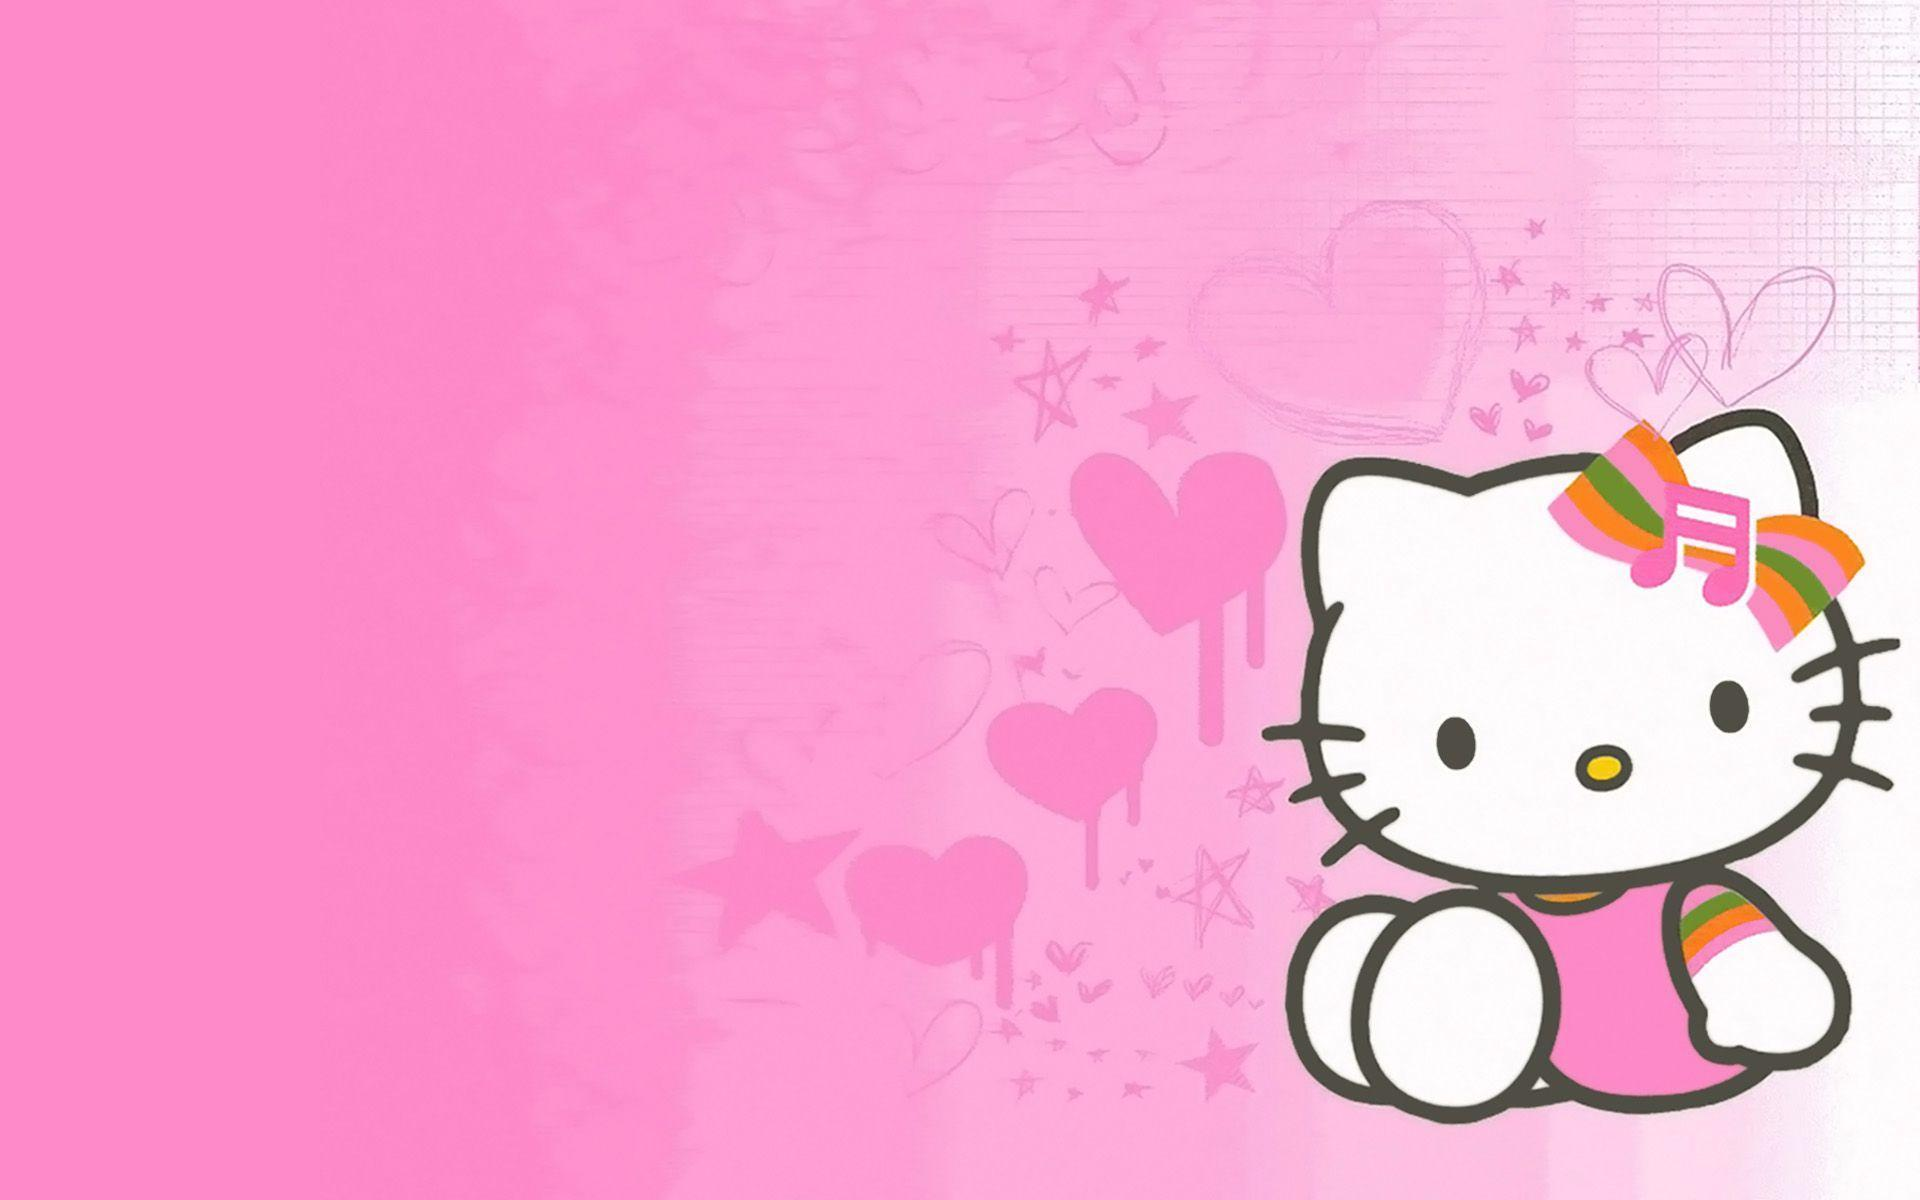 How to make Personalized Cat Wallpaper